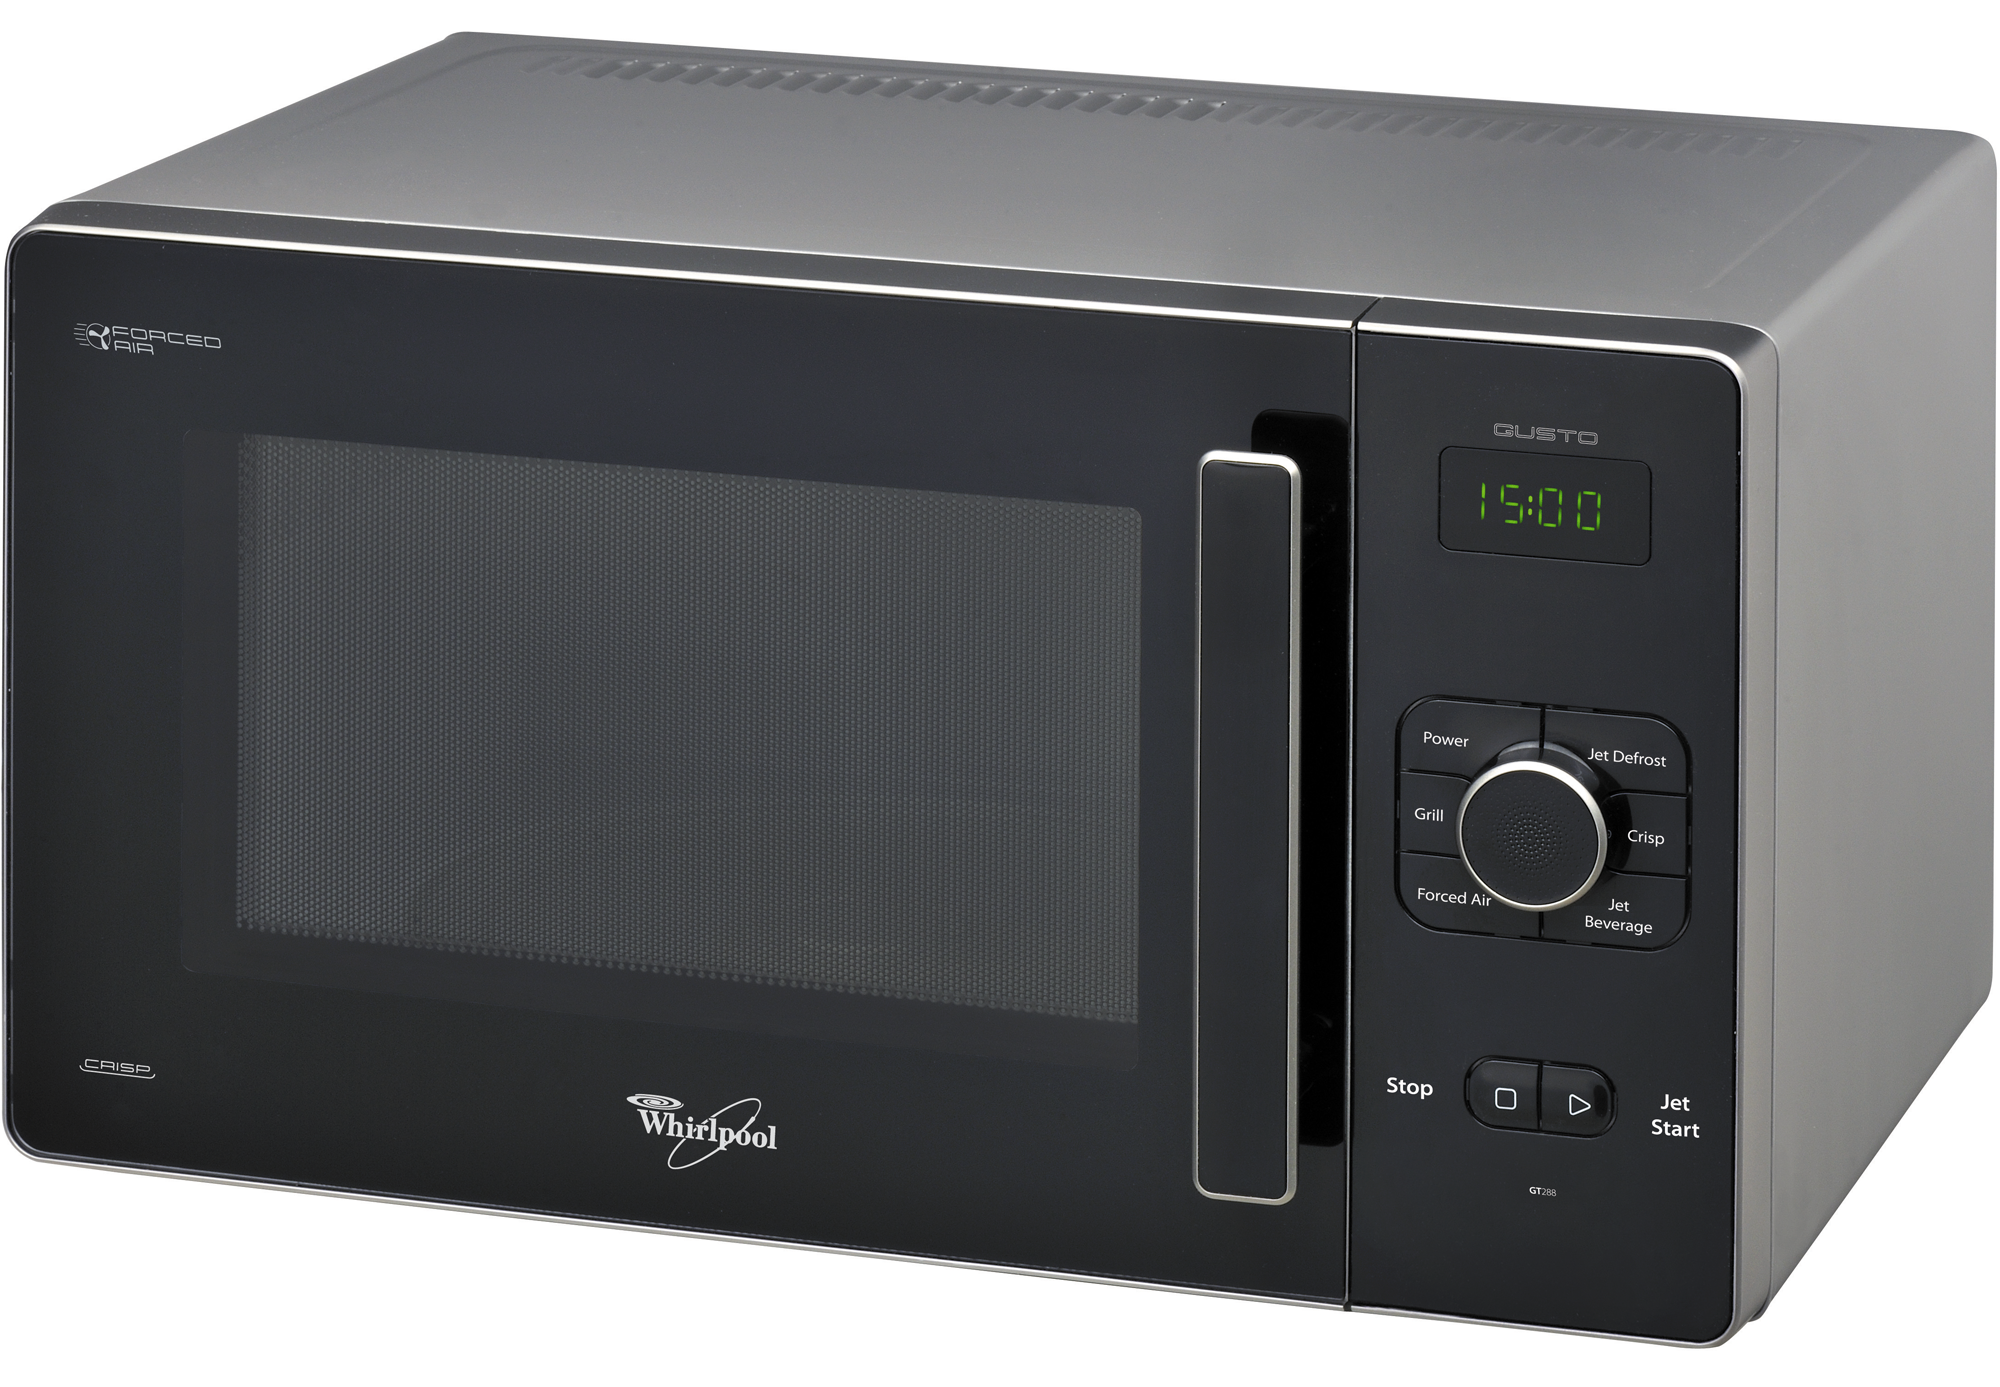 Whirlpool Gusto GT288 – Forno Microonde